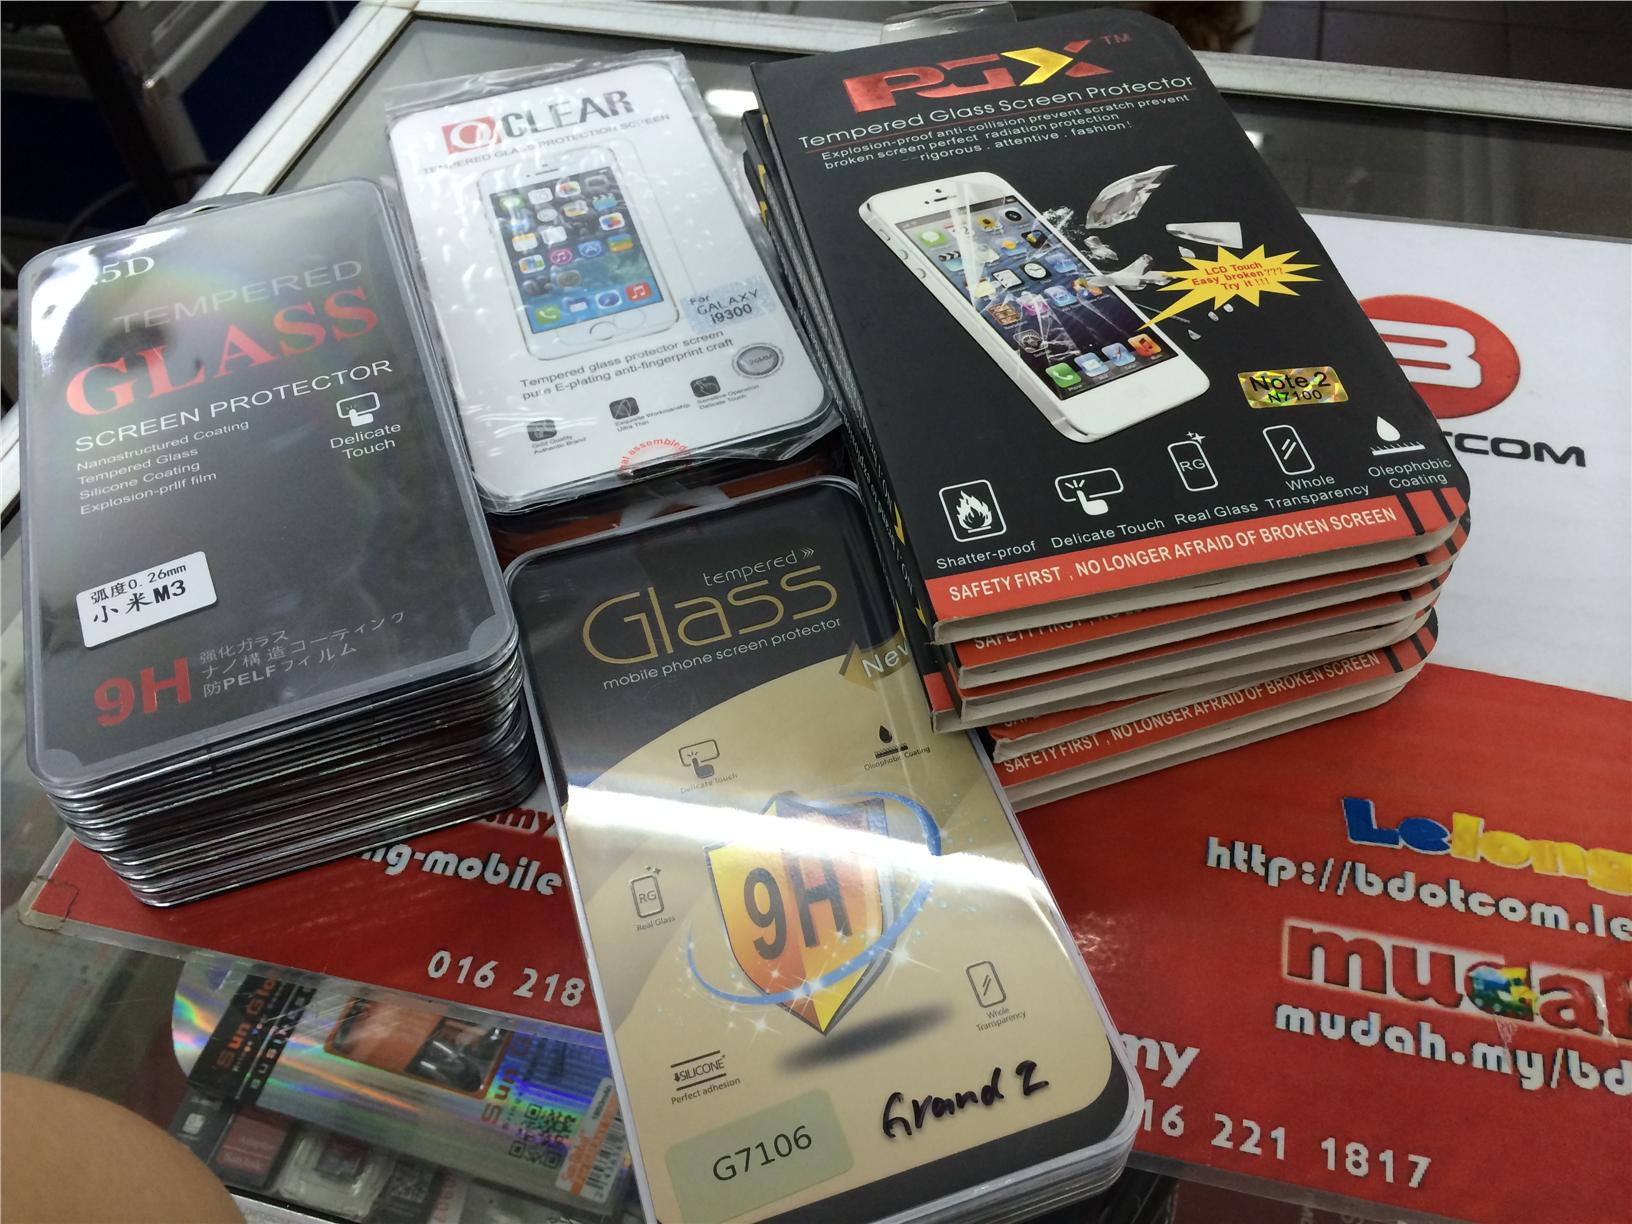 Bdotcom = XiaoMi Mi3 Tempered Glass Screen Protector